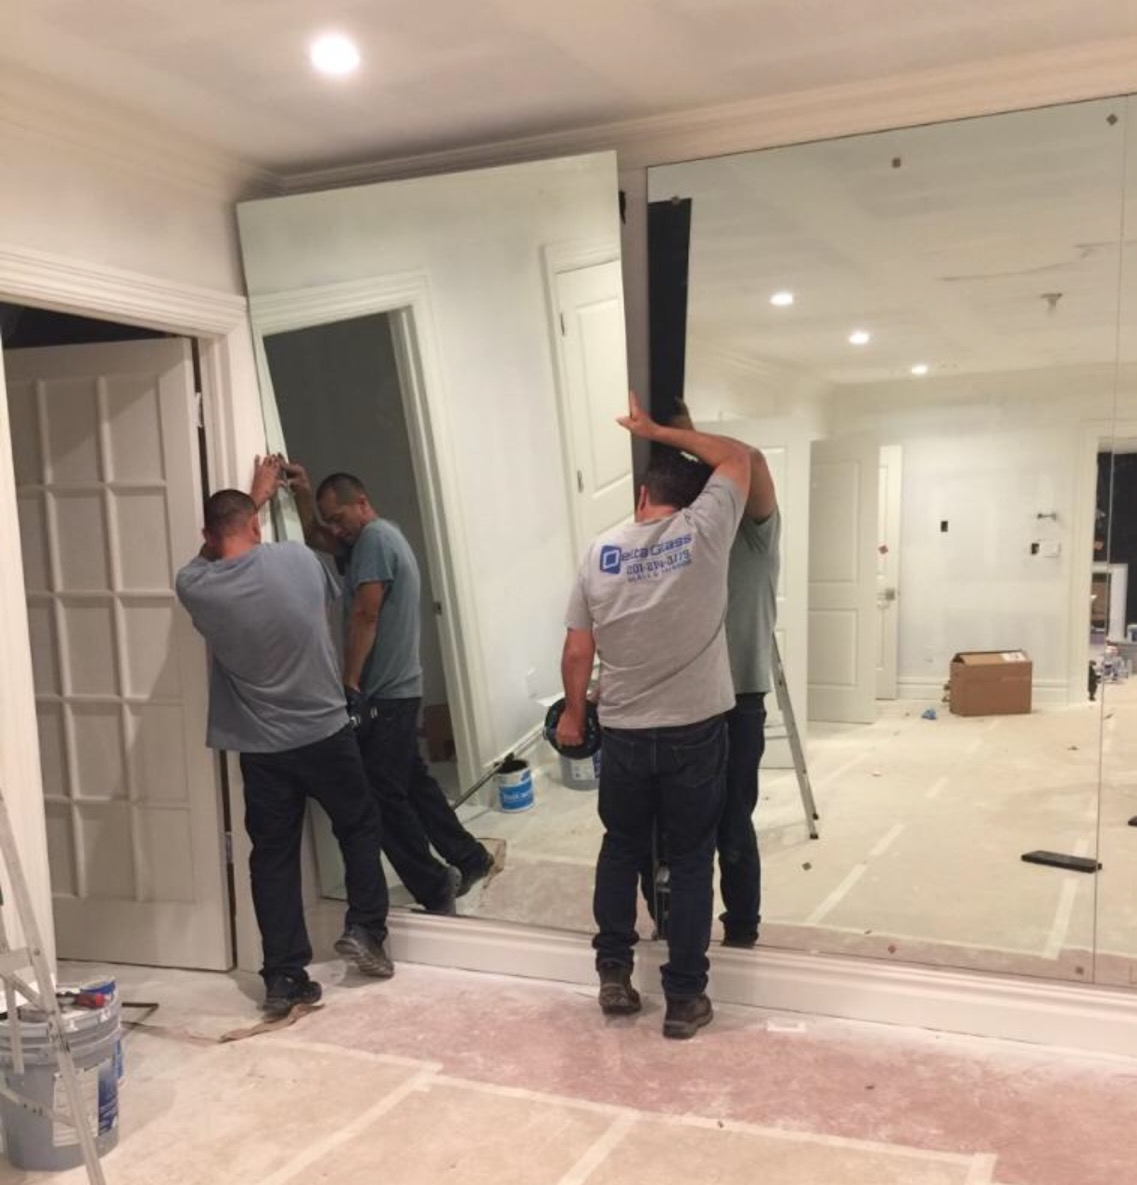 How We Work ? - At Delta Glass, we aim to provide you with quick and easy installation of all kinds of mirror you need. Our team of experts help you create custom mirror designs that are perfectly suited to your requirements.With three decades of experience in mirror installation in NY and NJ areas, our team of professionals understand your need for perfection. When it comes to glass, we are committed to providing you only the BEST.